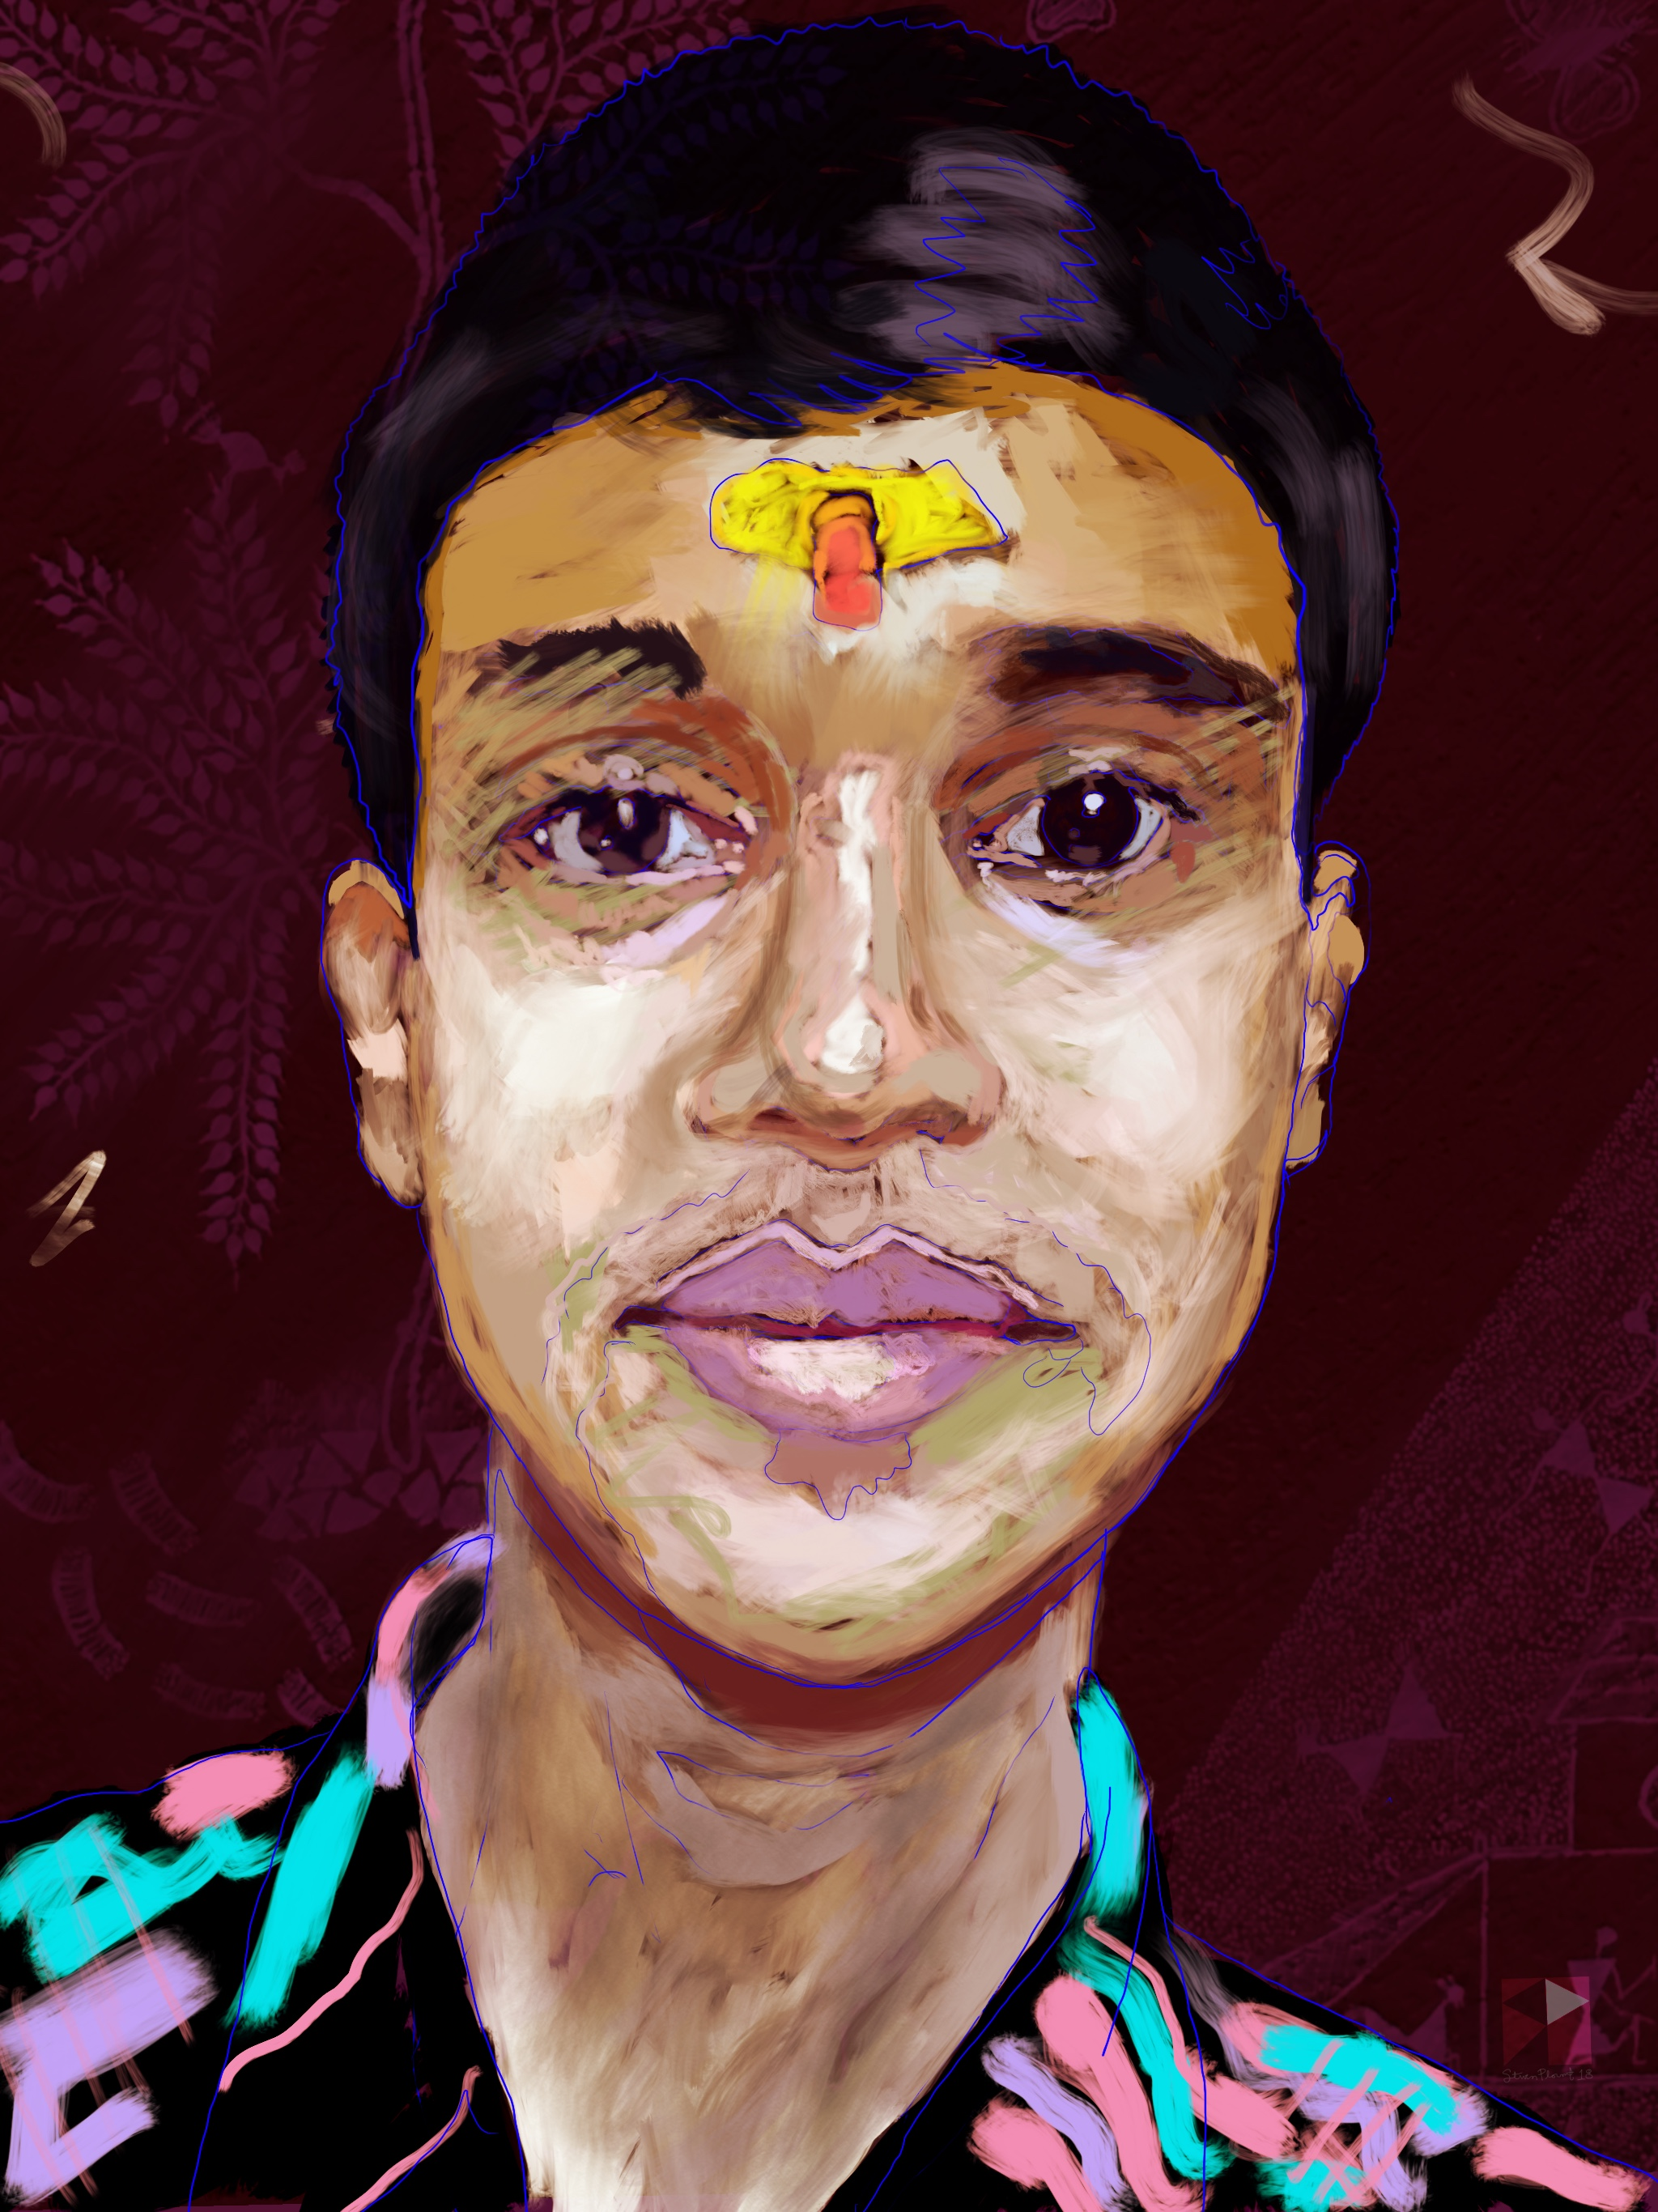 Head of a Hindu Boy   FBSelfie, ProCreate, Apple Pencil, Photoshop, iPad, Desktop Digital Image Dimensions Variable © SP.2018